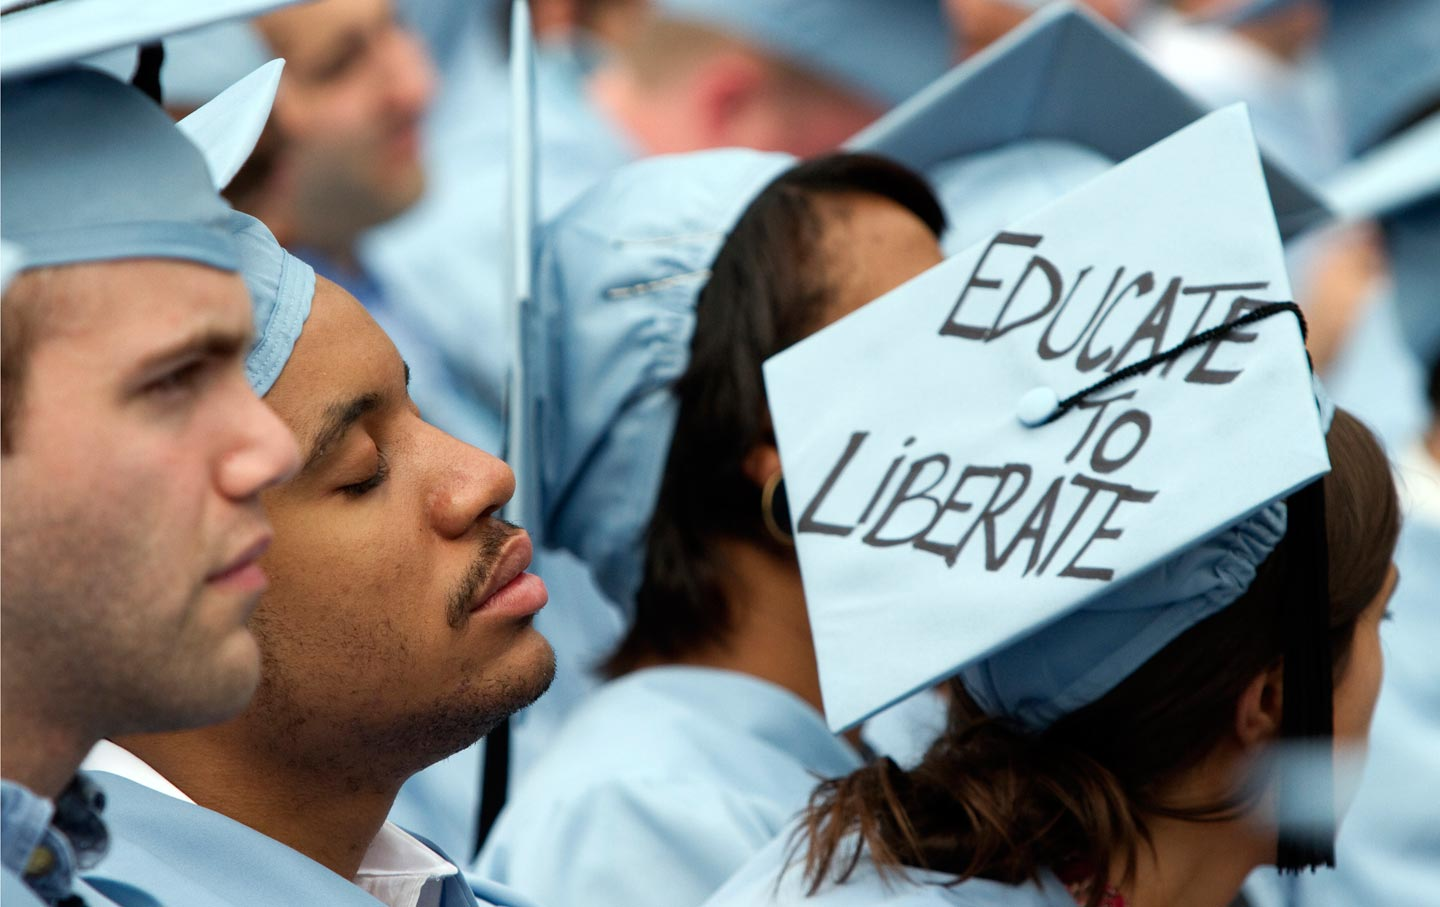 It's Official: Graduate Students Can Unionize